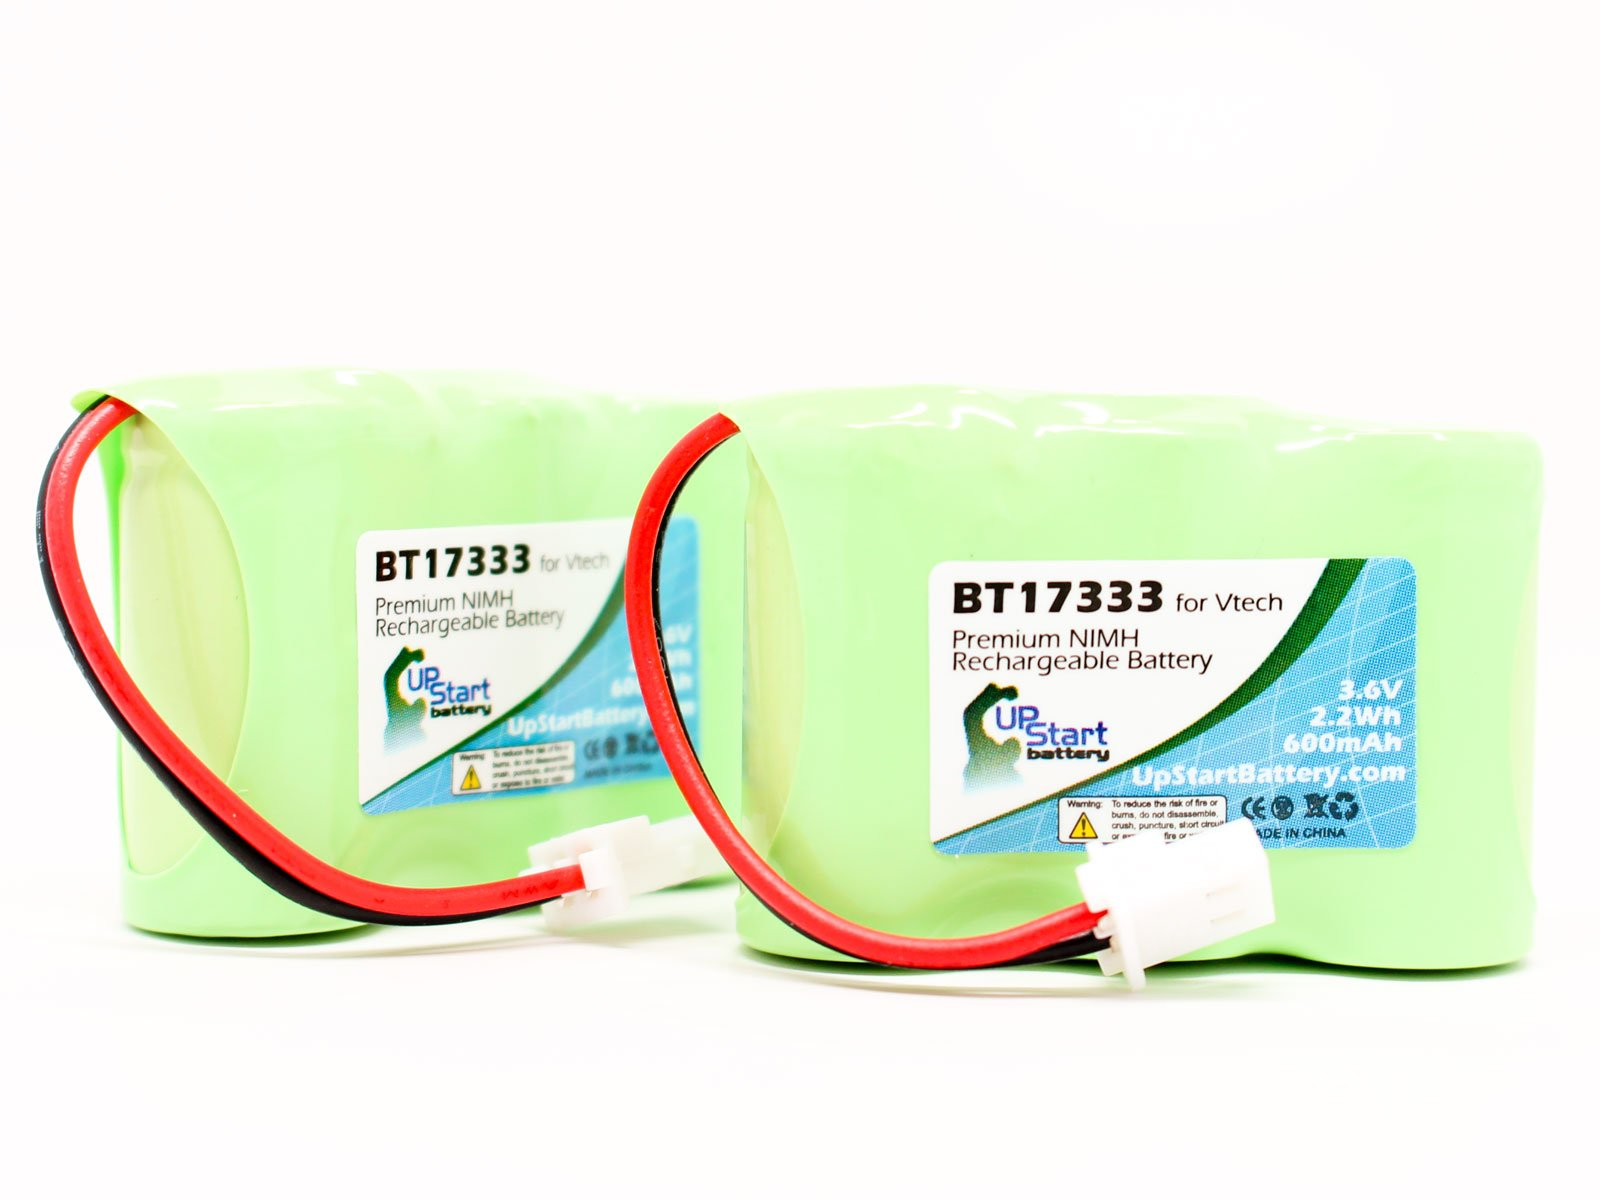 600mAh 3.6V NI-MH 2 Pack Replacement for VTech BT27233 Battery Compatible with VTech Cordless Phone Battery